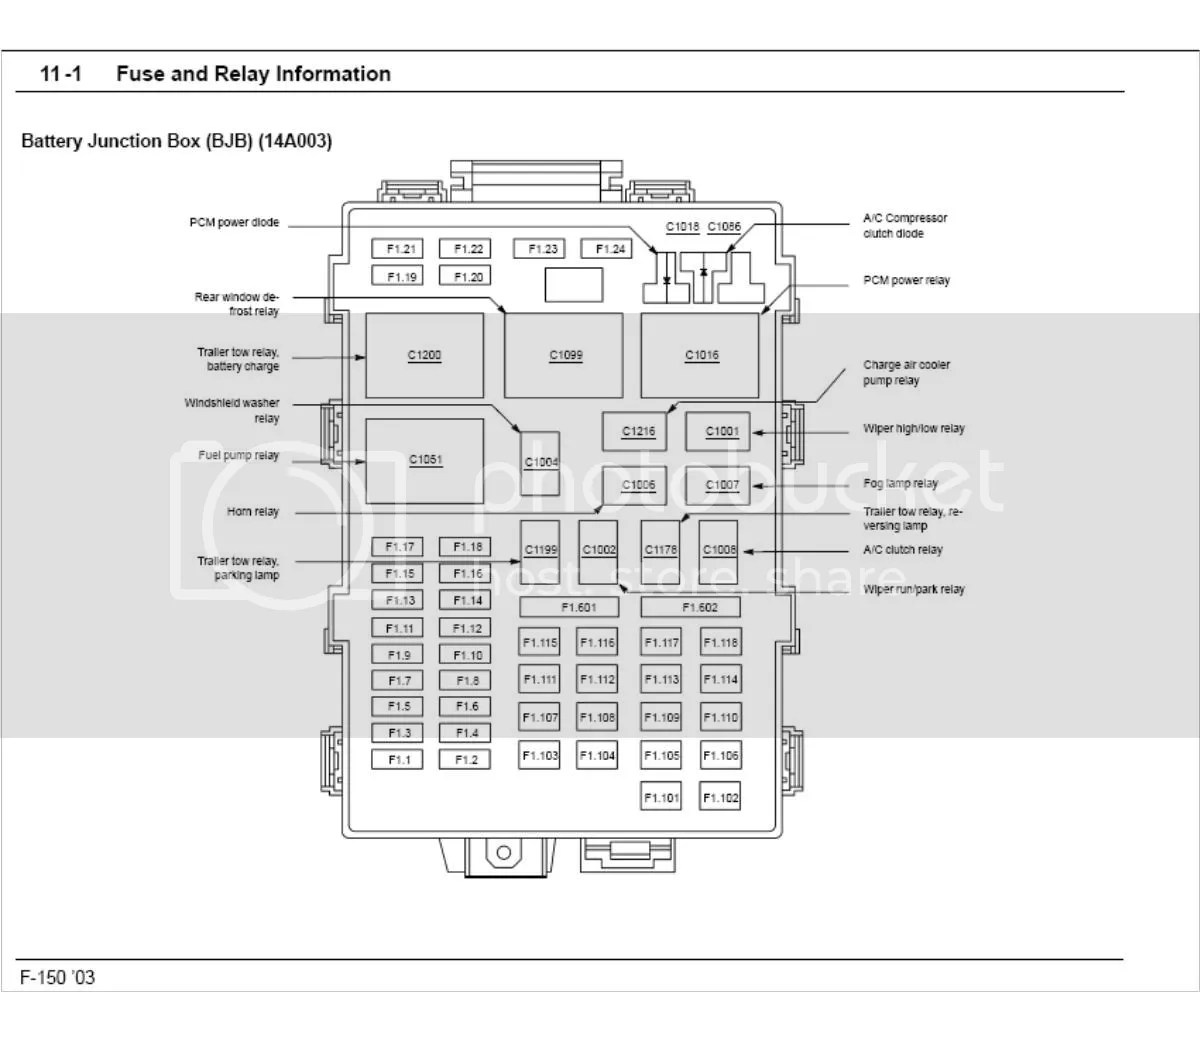 hight resolution of fuse diagram for 2003 f150 4 6l ford f150 forum ford f150 power window switch dash